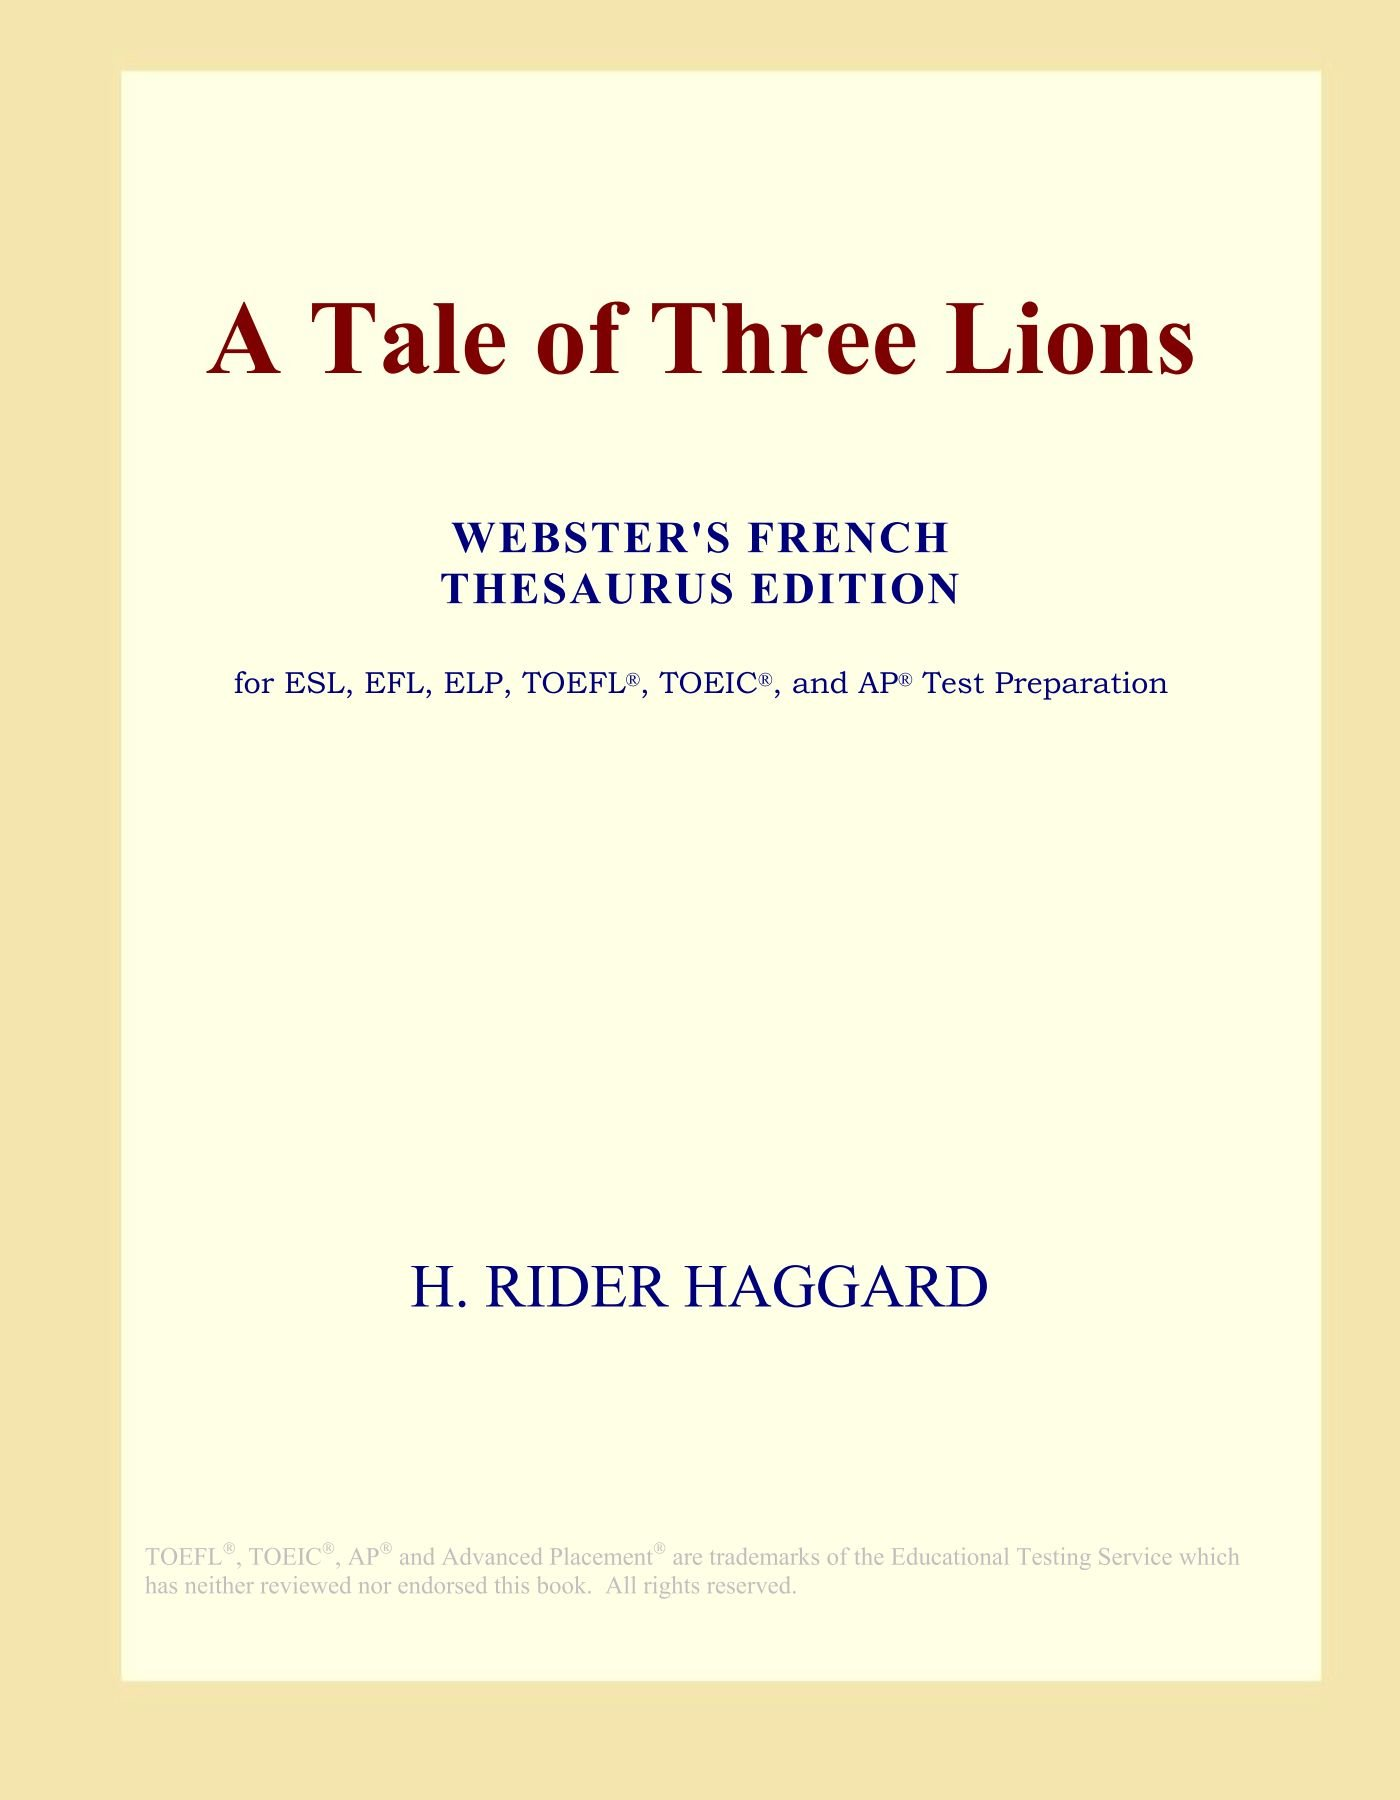 Download A Tale of Three Lions (Webster's French Thesaurus Edition) PDF